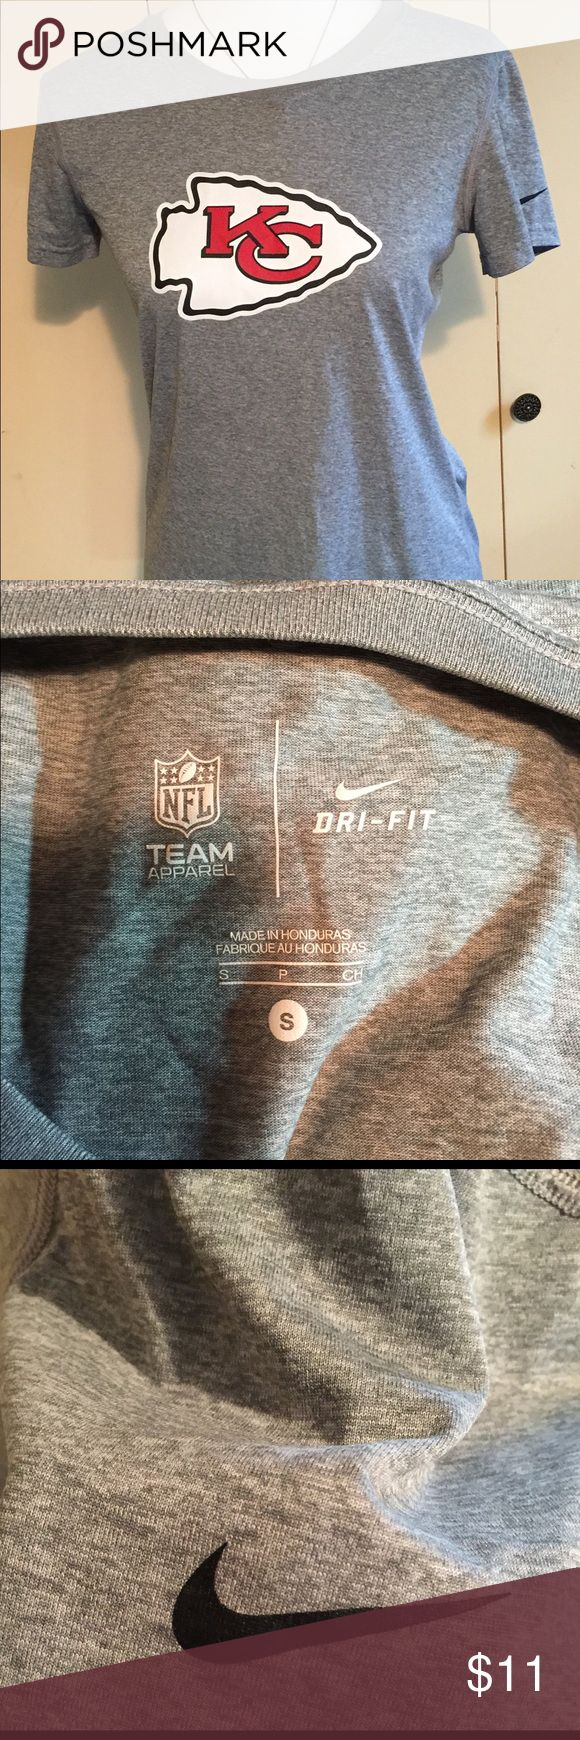 Nike KC Chiefs Dri-Fit ladies size S tee shirt Nike Brand KC Chiefs Dri-Fit ladies size Small short sleeved t shirt - perfect Nike NFL Team Apparel Tops Tees - Short Sleeve